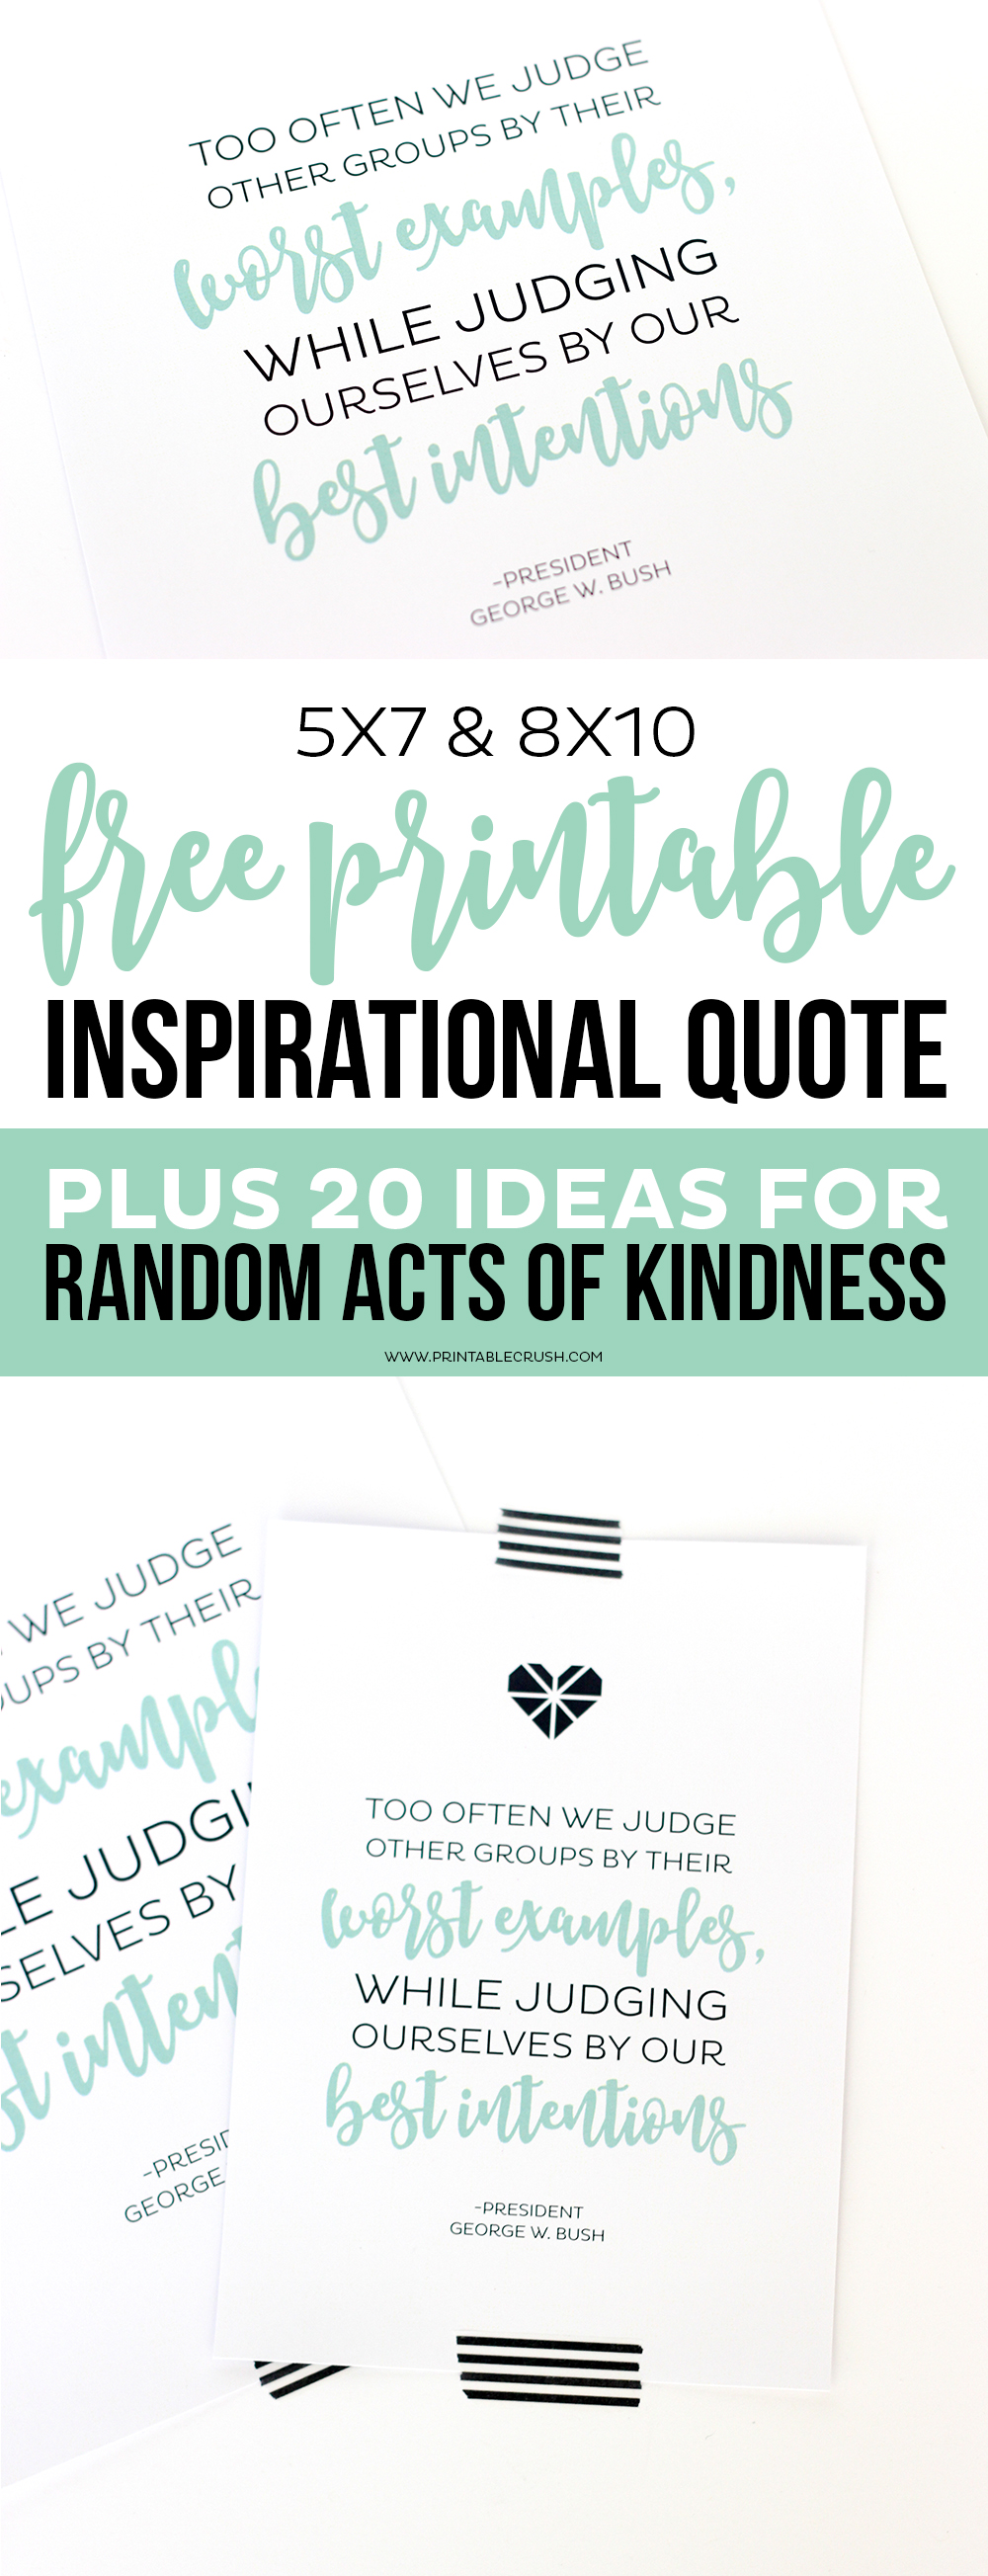 picture regarding Printable Inspirational Quotes identified as Absolutely free Printable Inspirational Quotation and Random Functions of